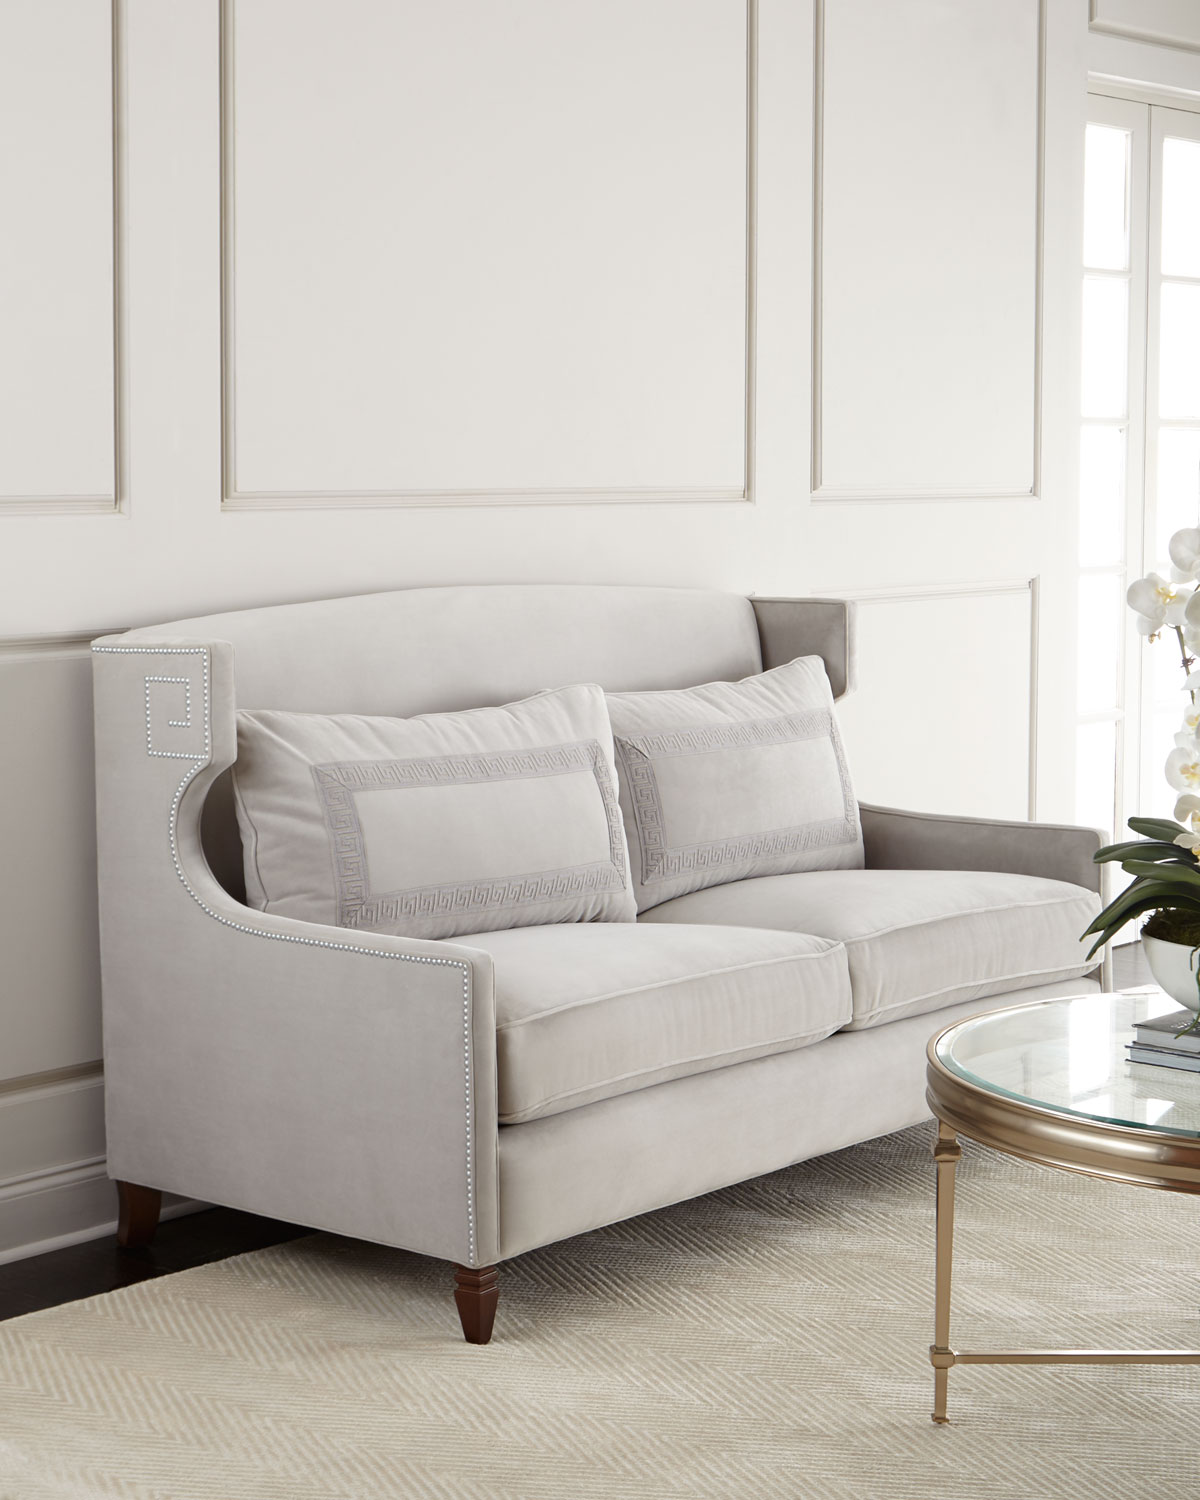 SFM00047 upholstered small sofa furniture